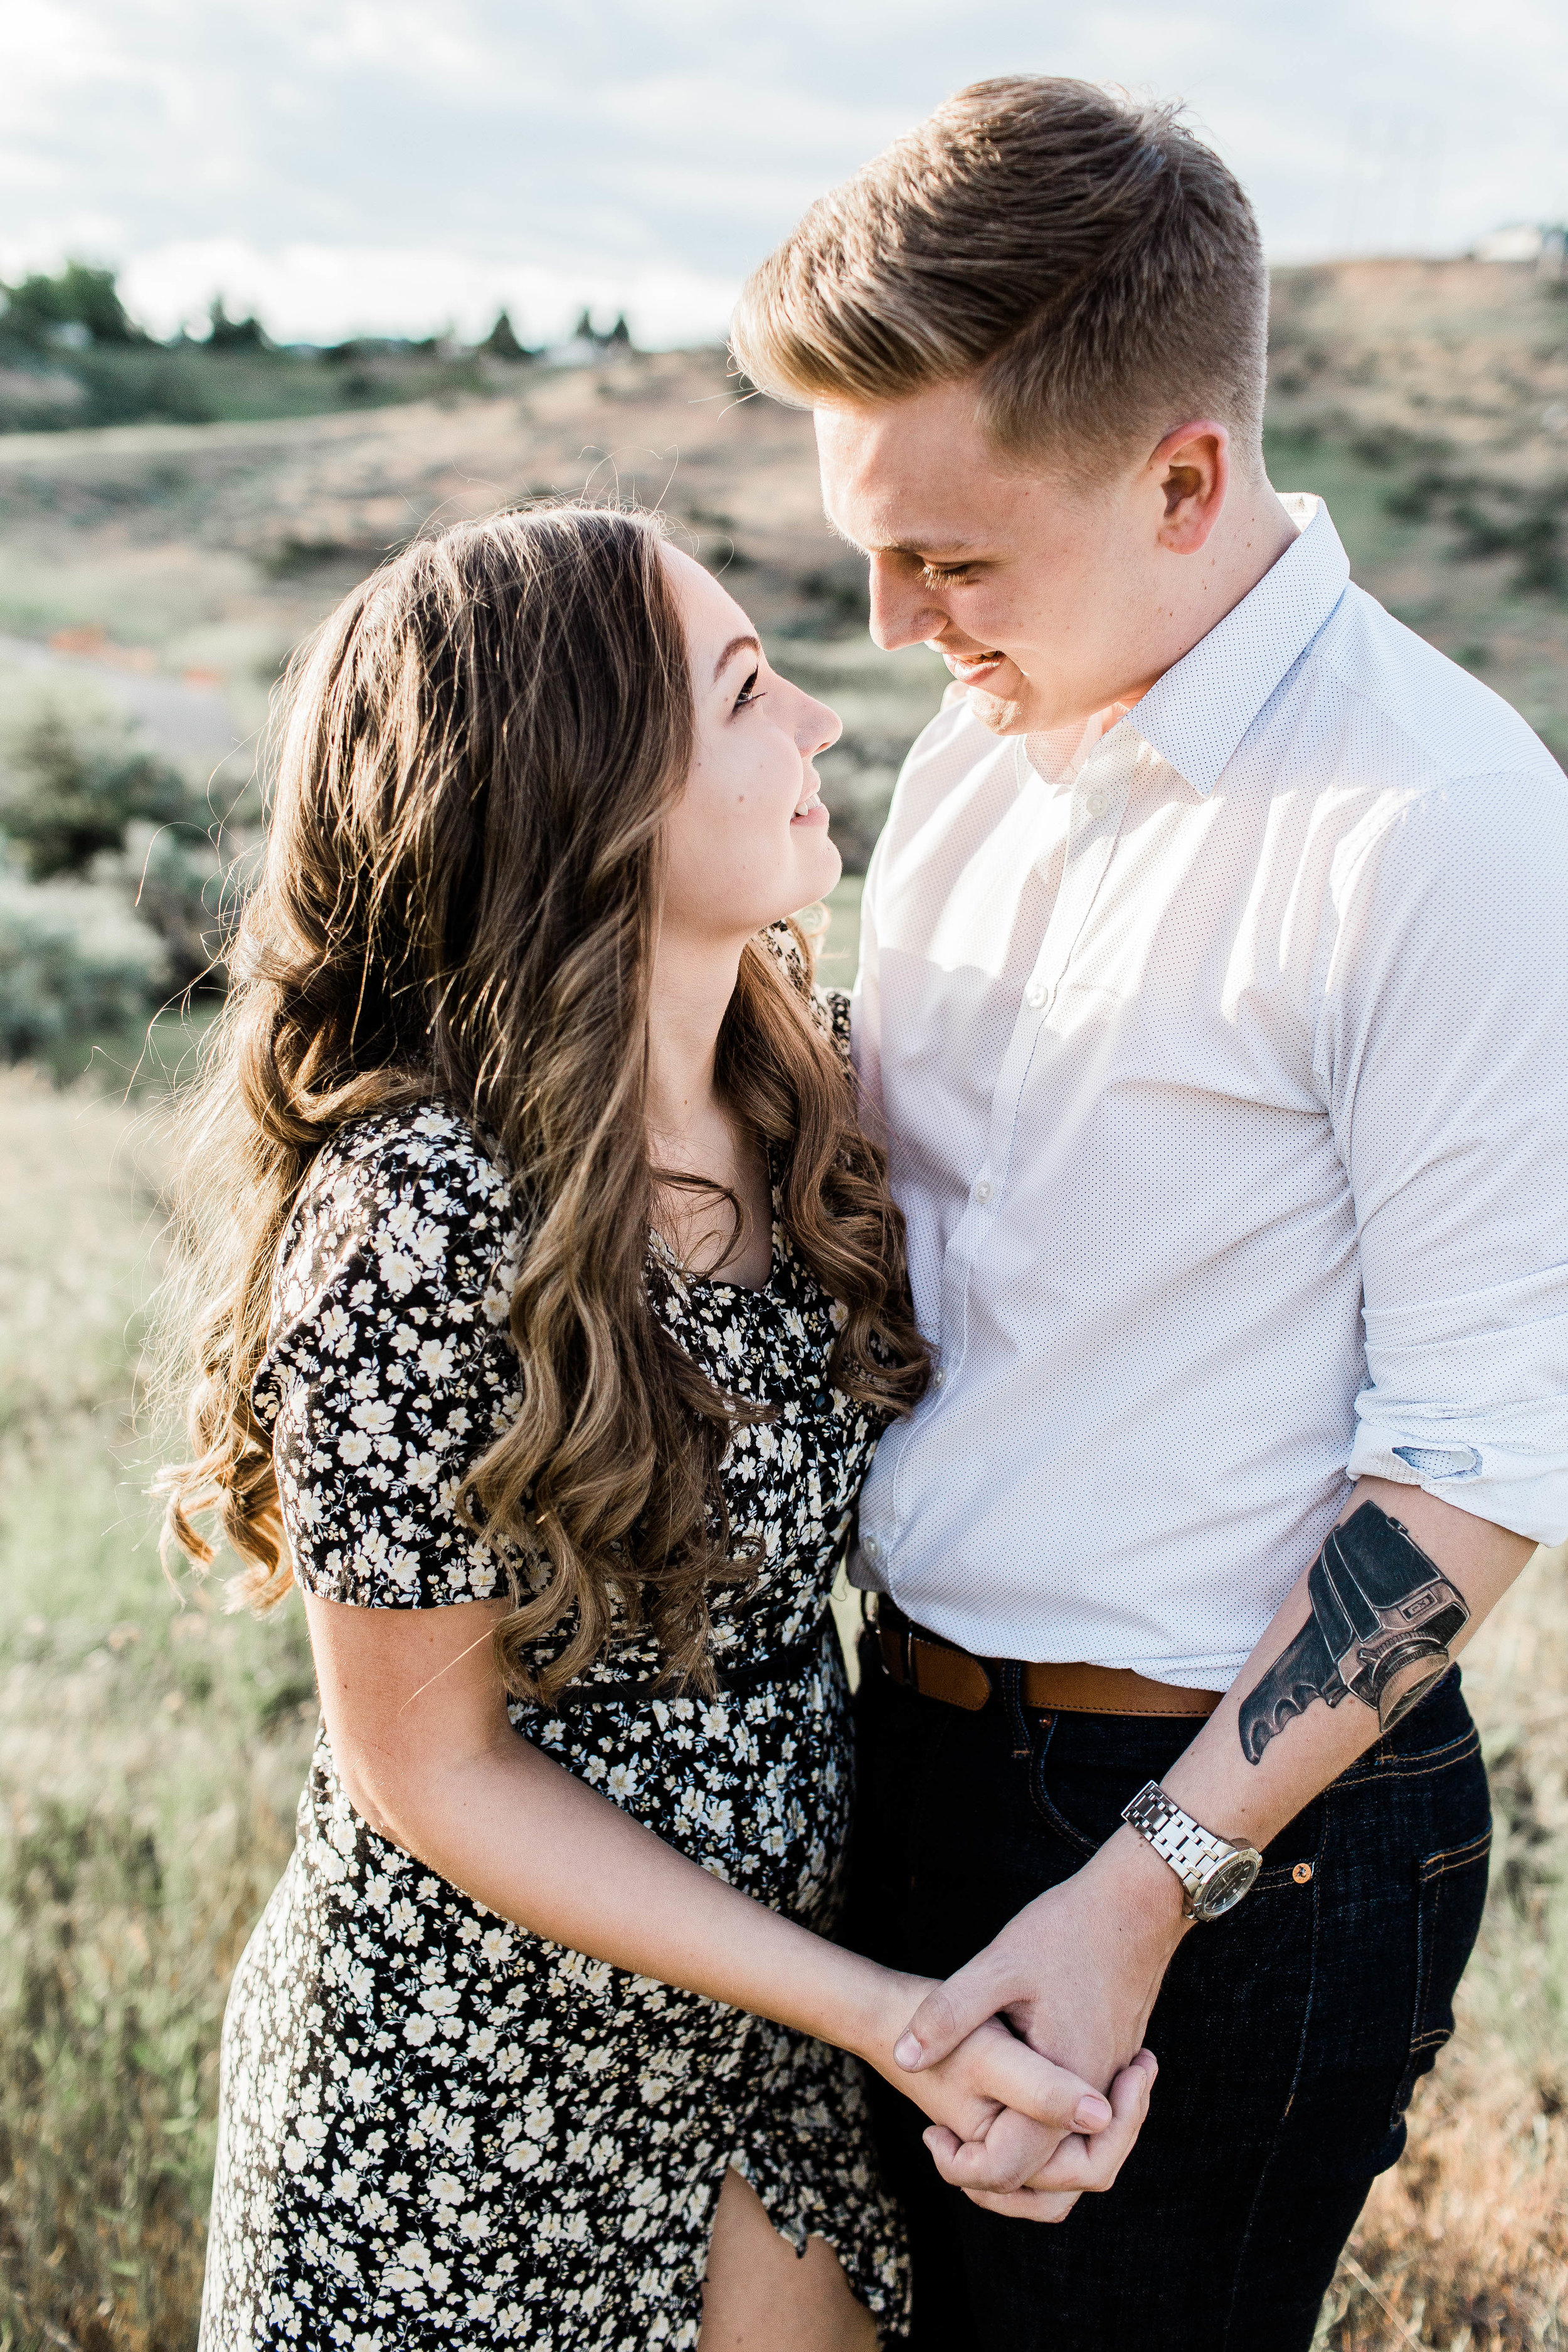 Kole-Danielle-Boise-Foothills-Summer-Engagement-Session-54.jpg